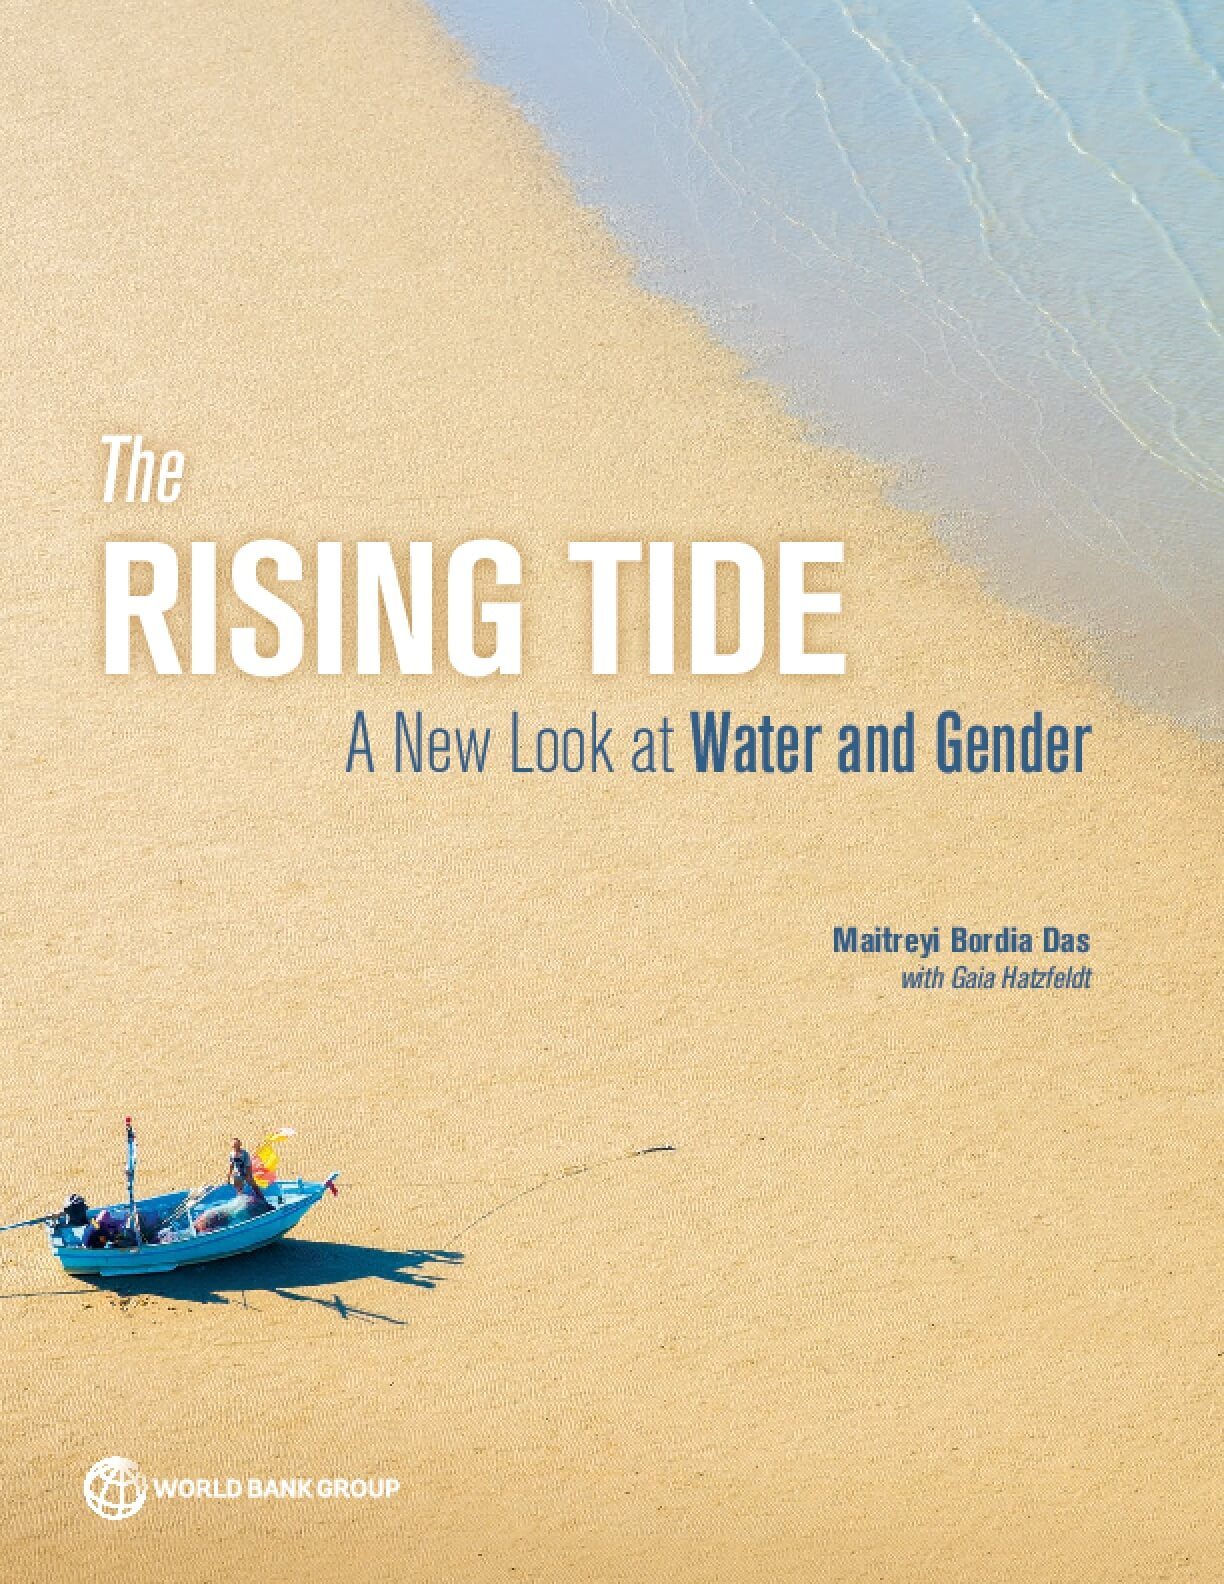 The Rising Tide: A New Look at Water and Gender